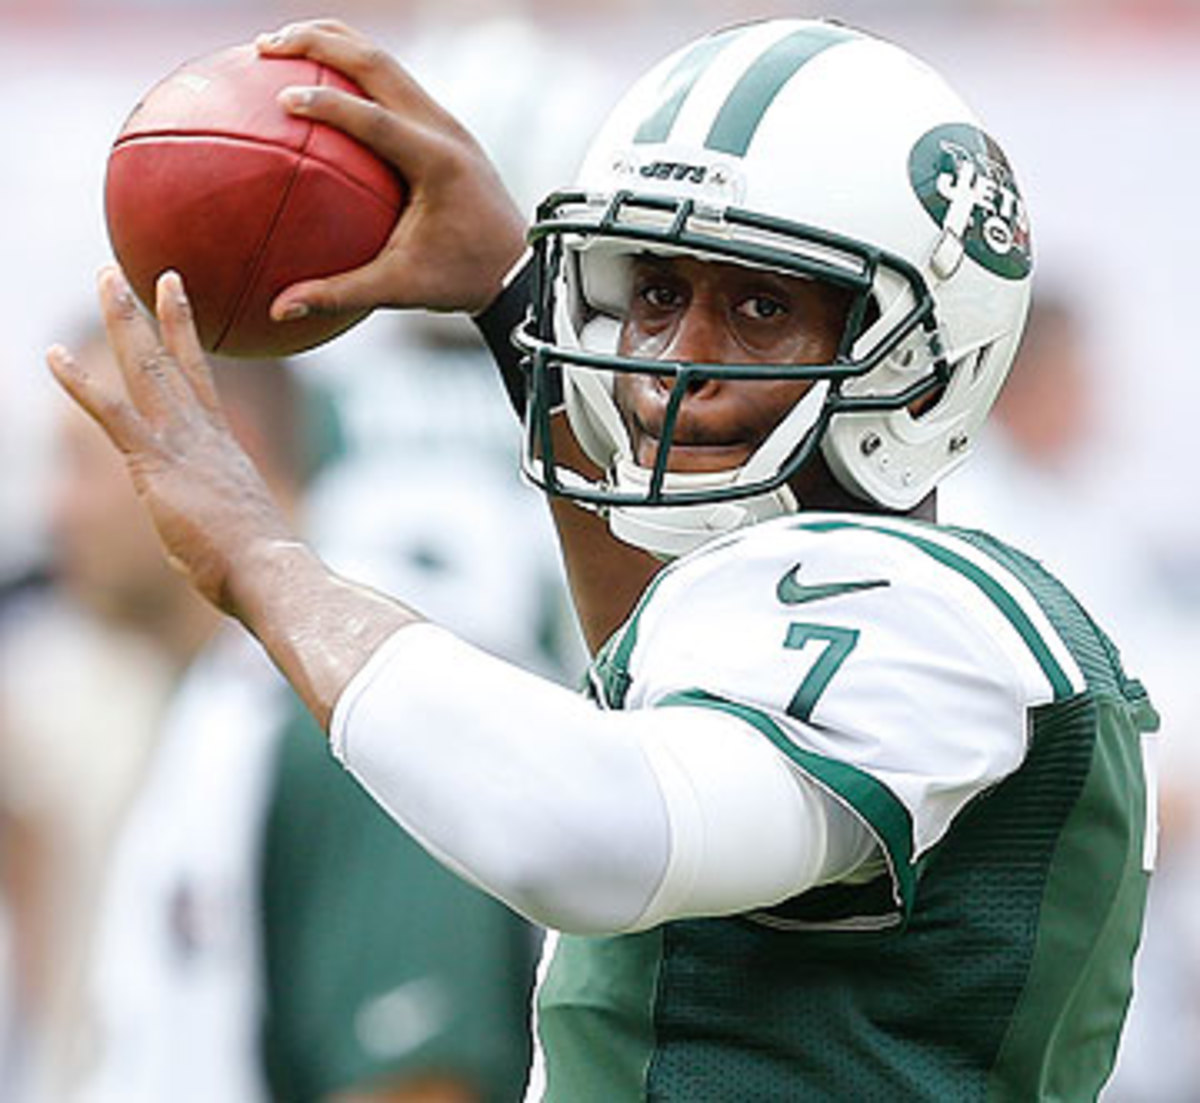 Geno Smith threw the ball 443 times in 16 games, an average of 27.6 attempts per contest. (Joel Auerbach/Getty Images)